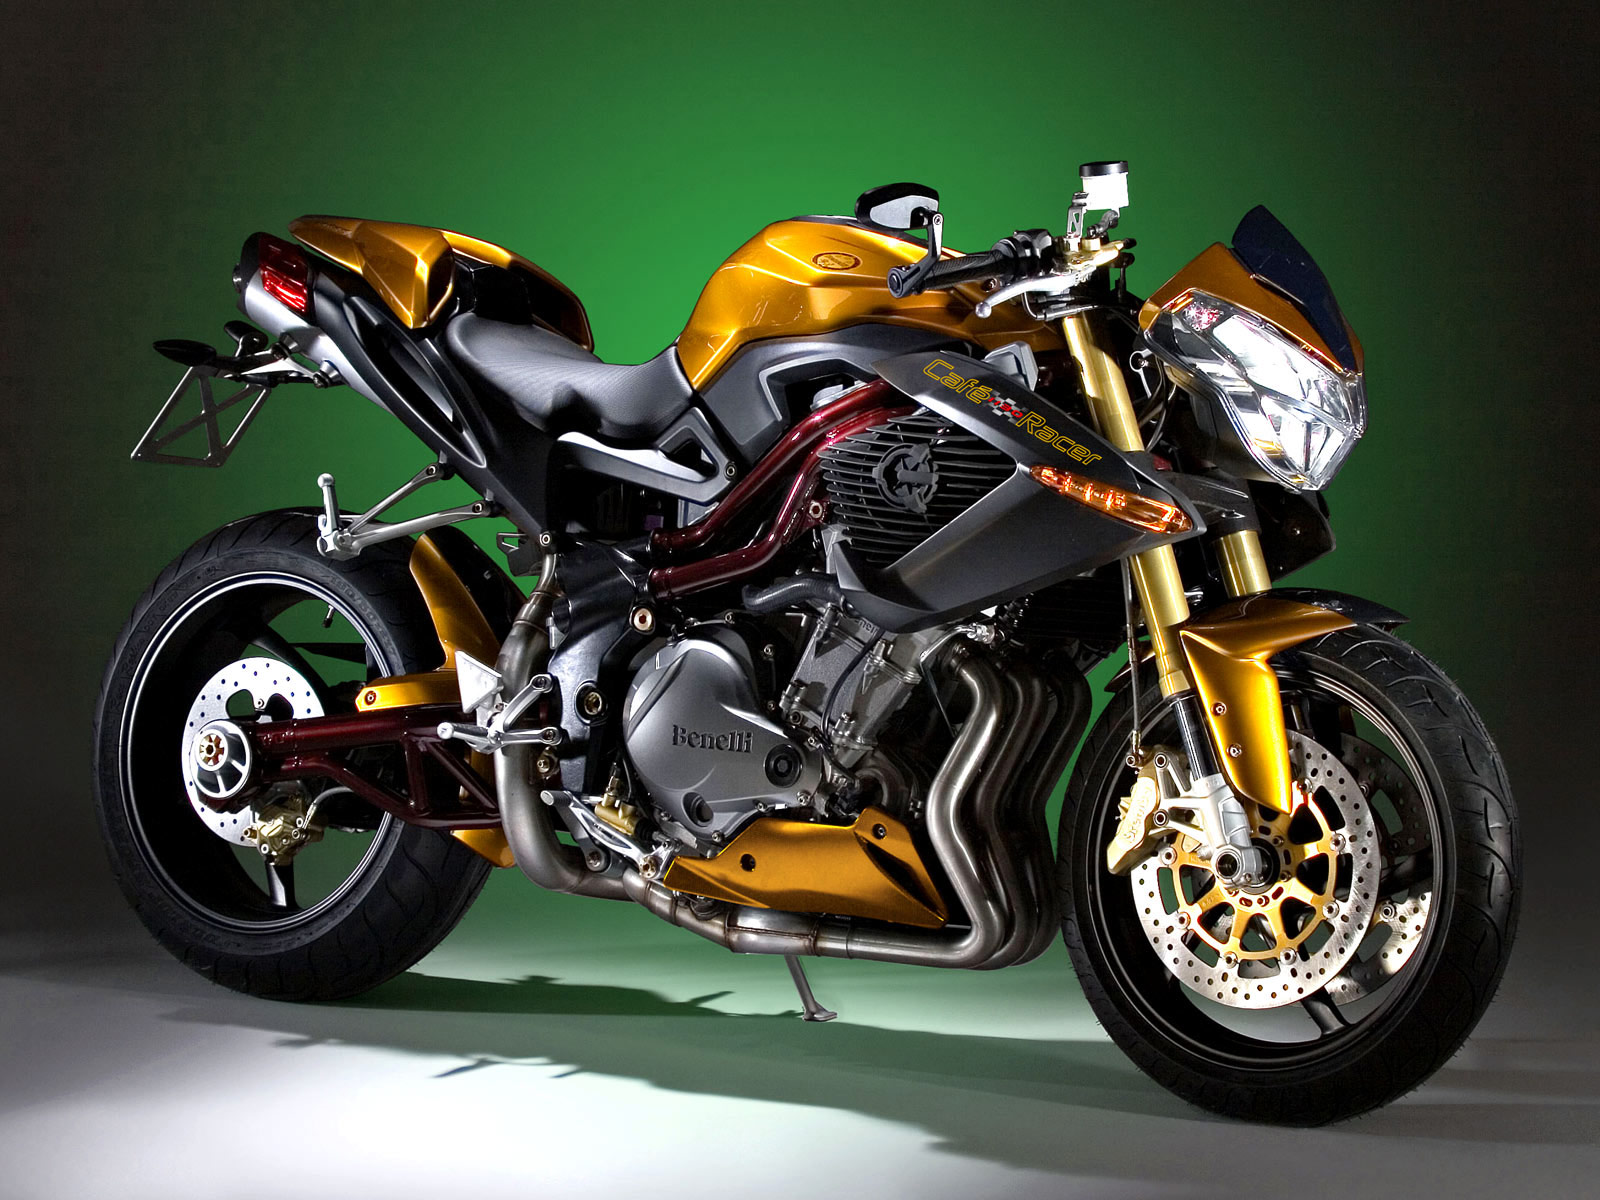 benelli motorcycle bikes cool bike moto motorcycles motos motor sport tnt 1130 3d racer cafe super wallpapers